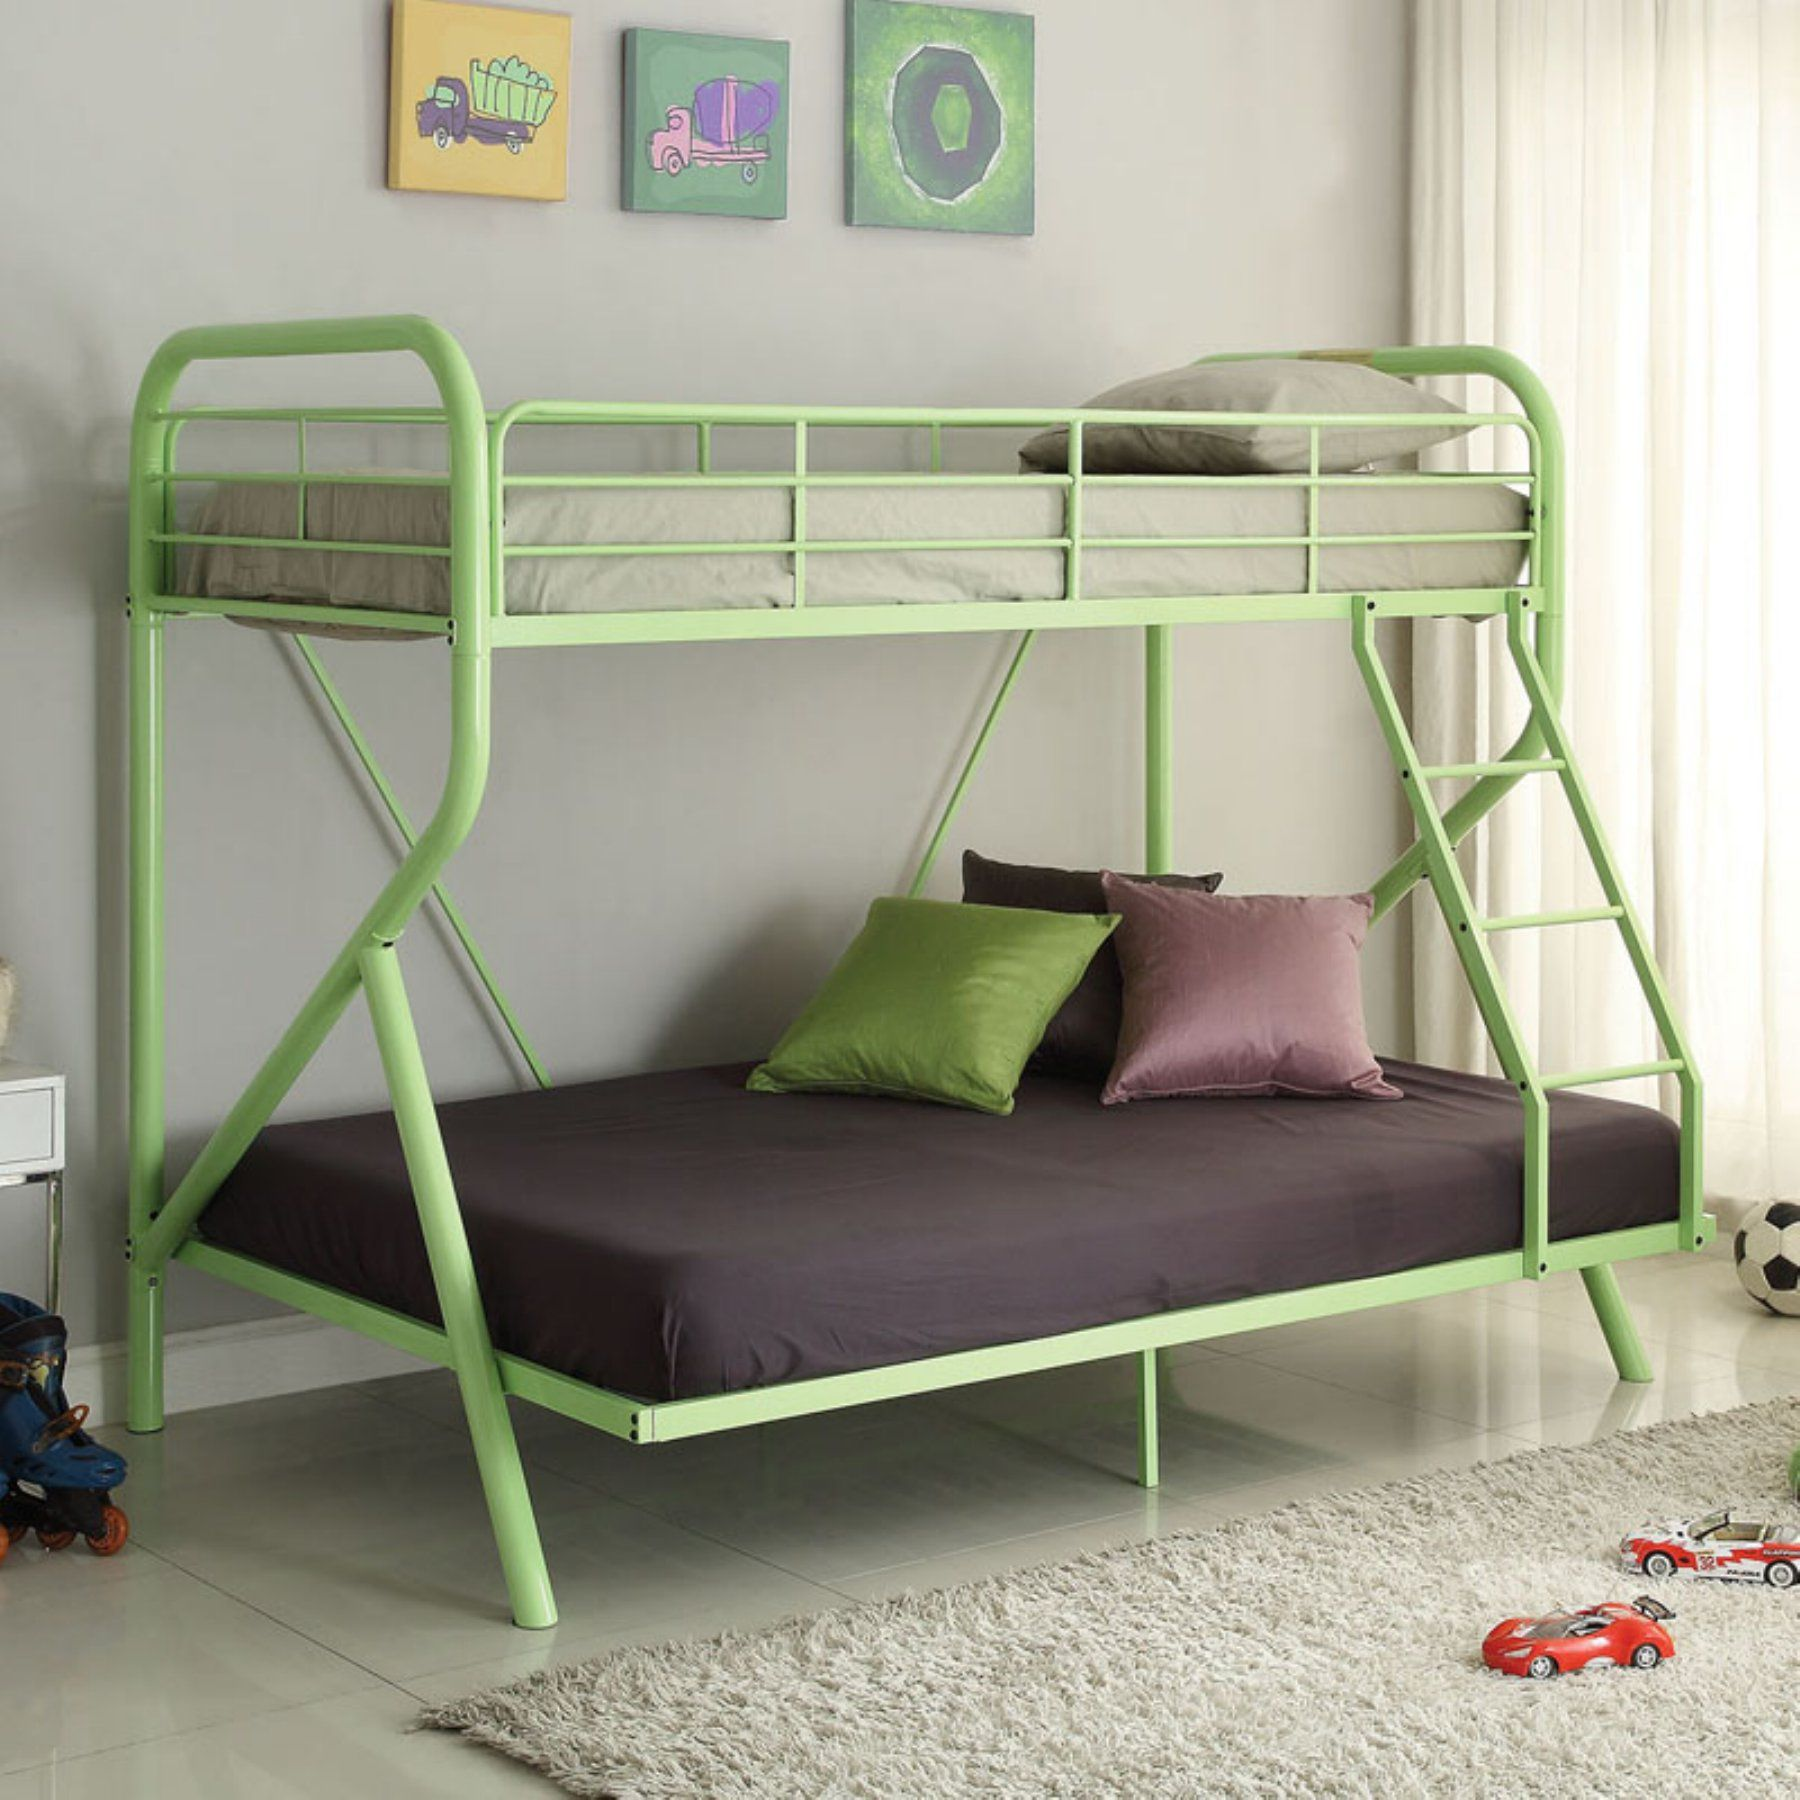 Acme furniture tracy twin over full bunk bed acm2387